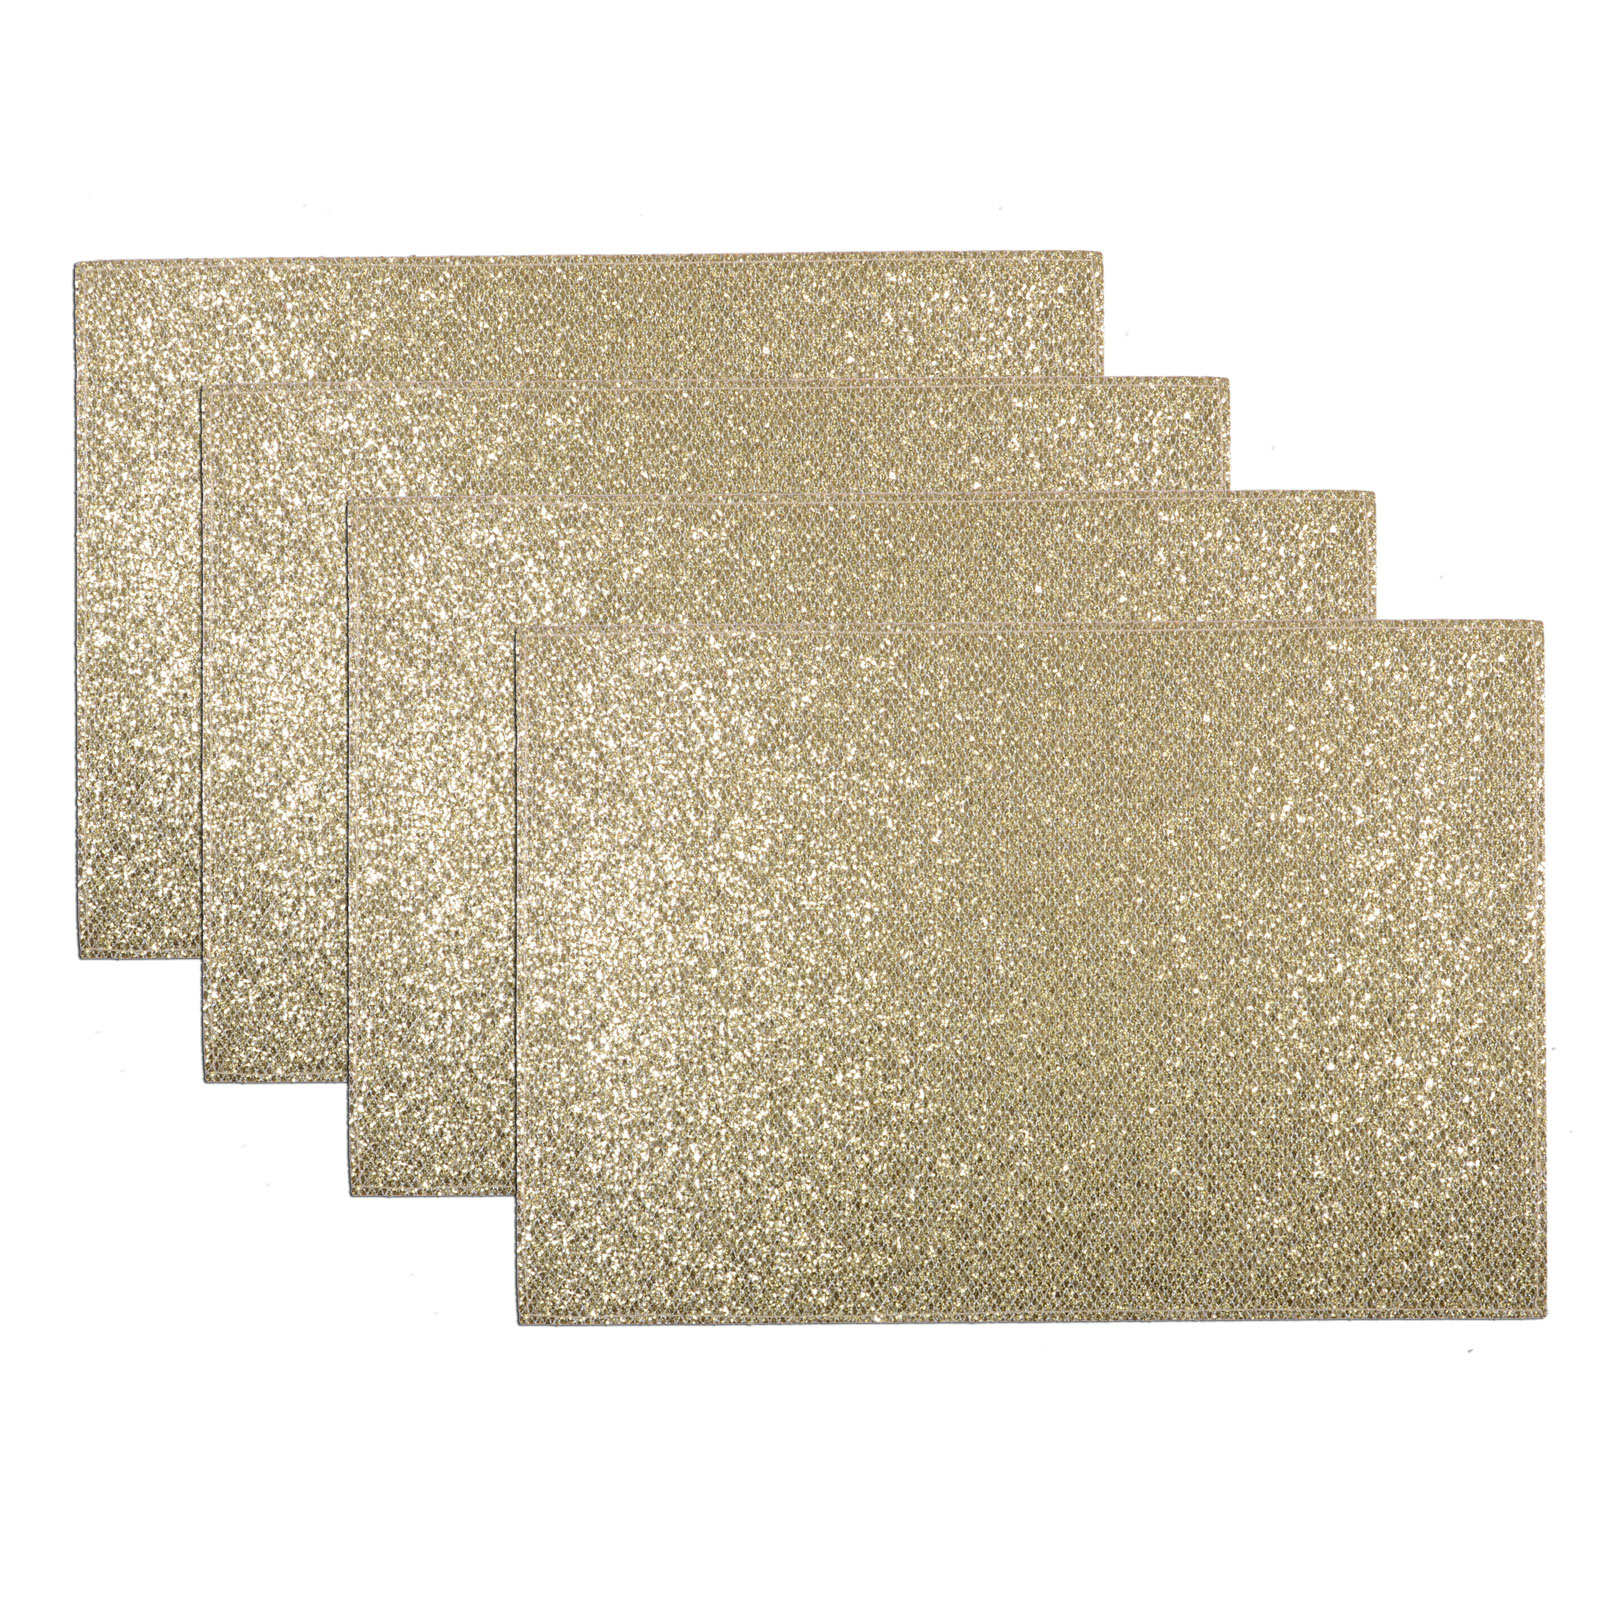 Set Of 4 Christmas Sparkly Glitter Place Mats Dinner Table  : XS39735fGlitter5fGold5f4 from www.ebay.co.uk size 1600 x 1600 jpeg 758kB